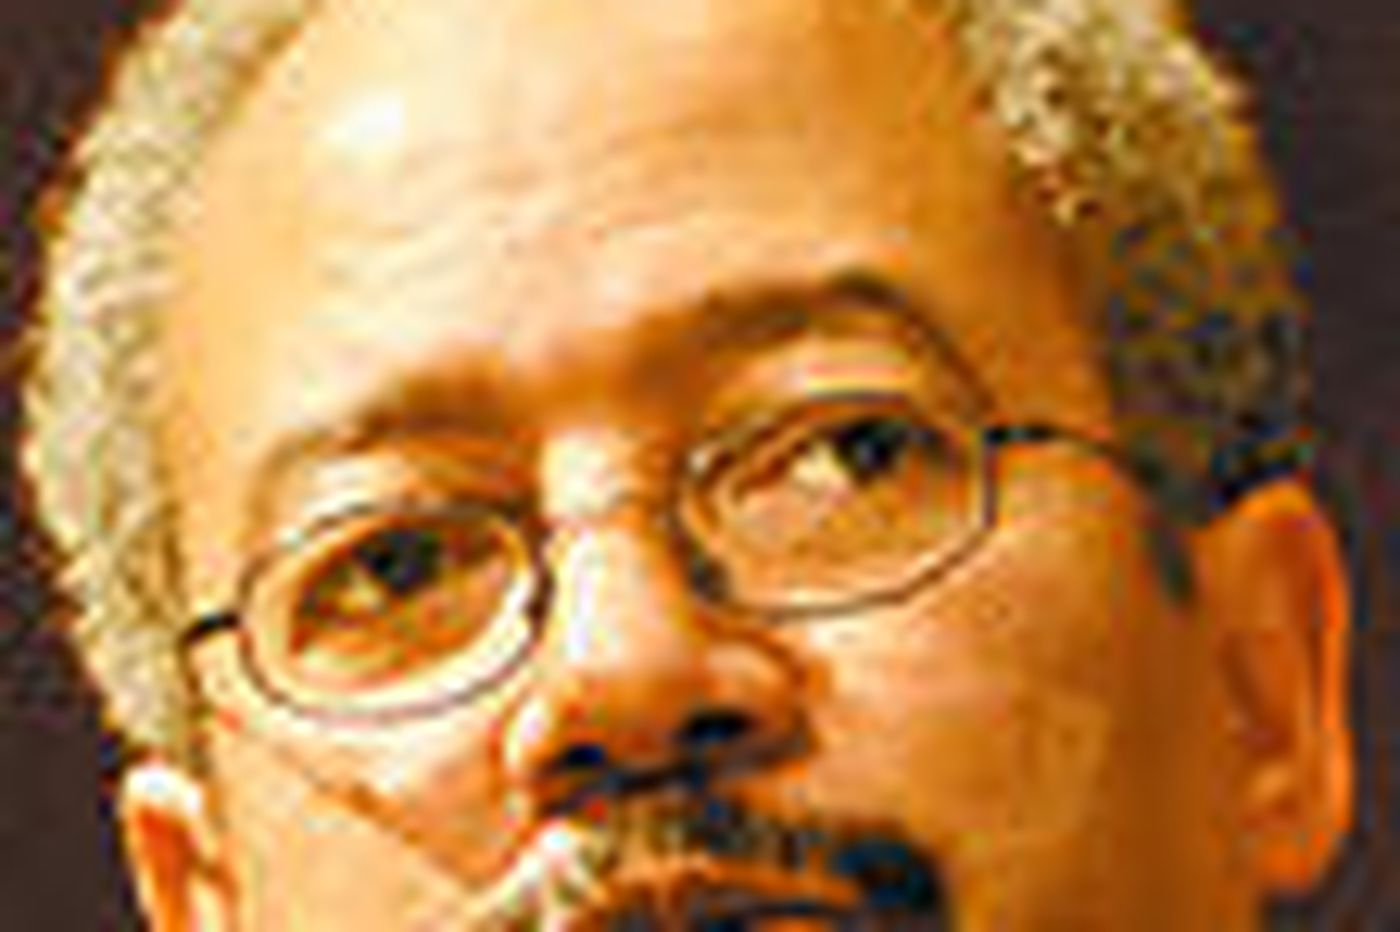 Inquiry looks at Fattah program